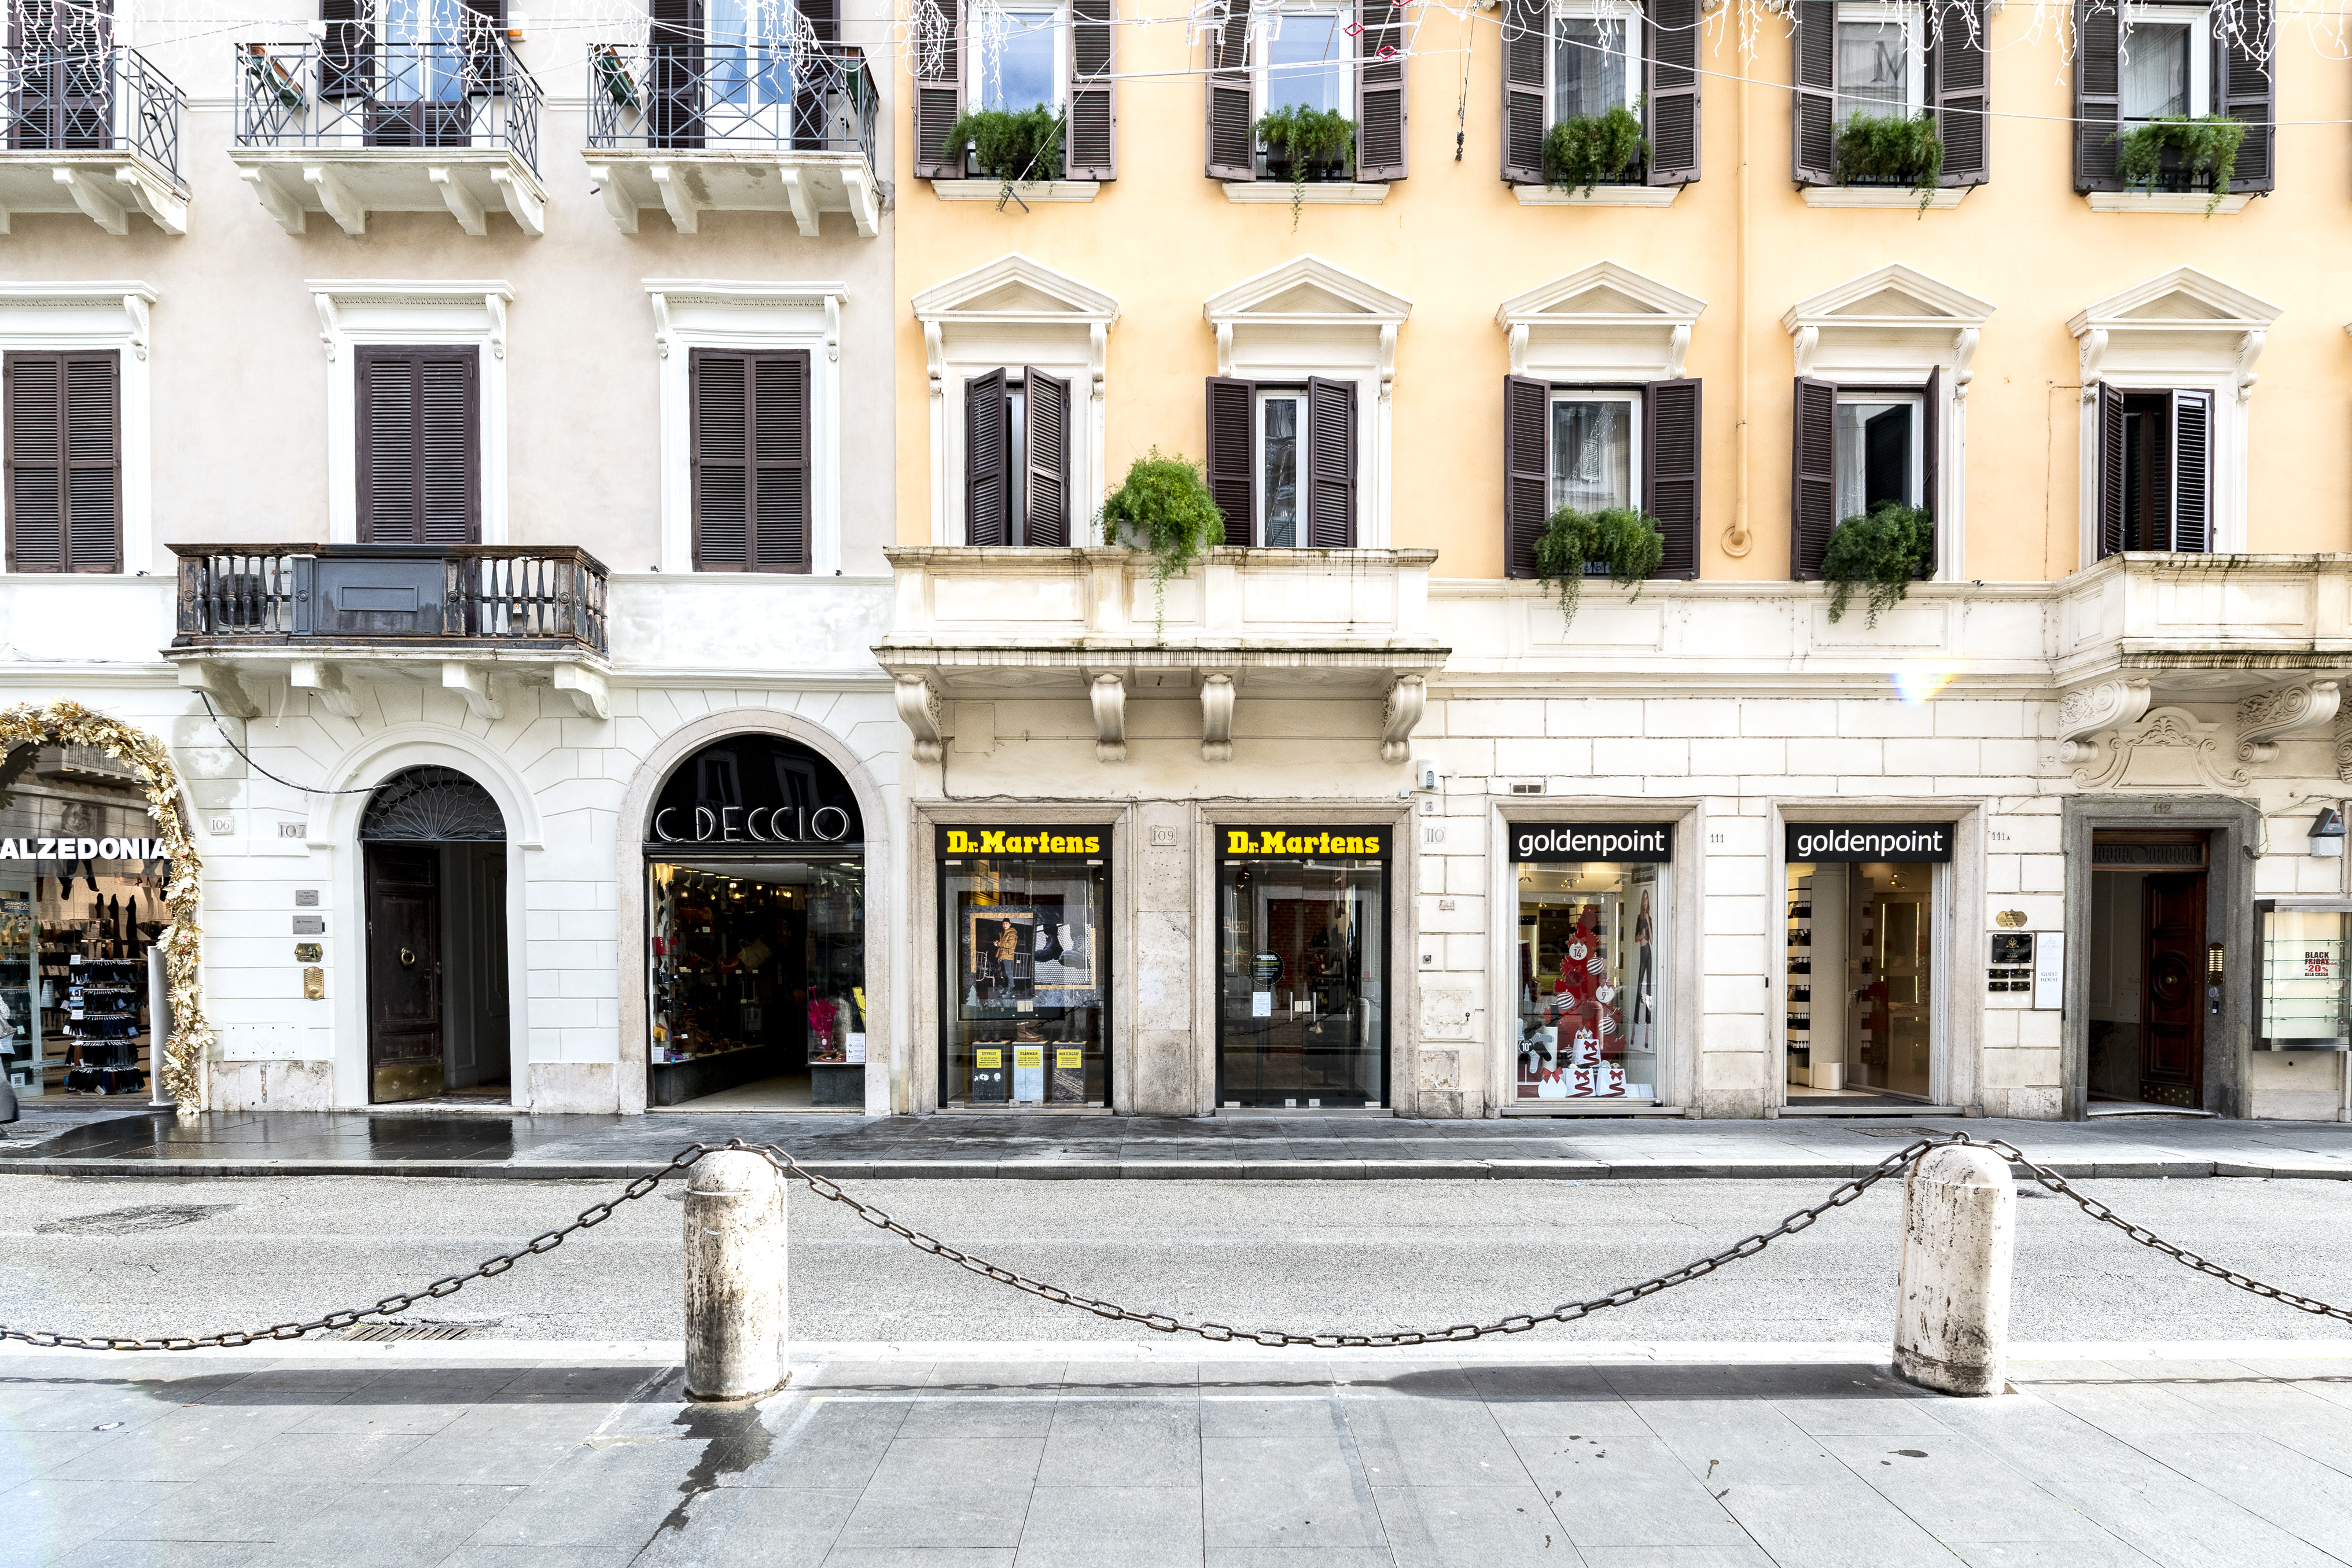 The windows of the Dr. Martens' store in Rome, Italy